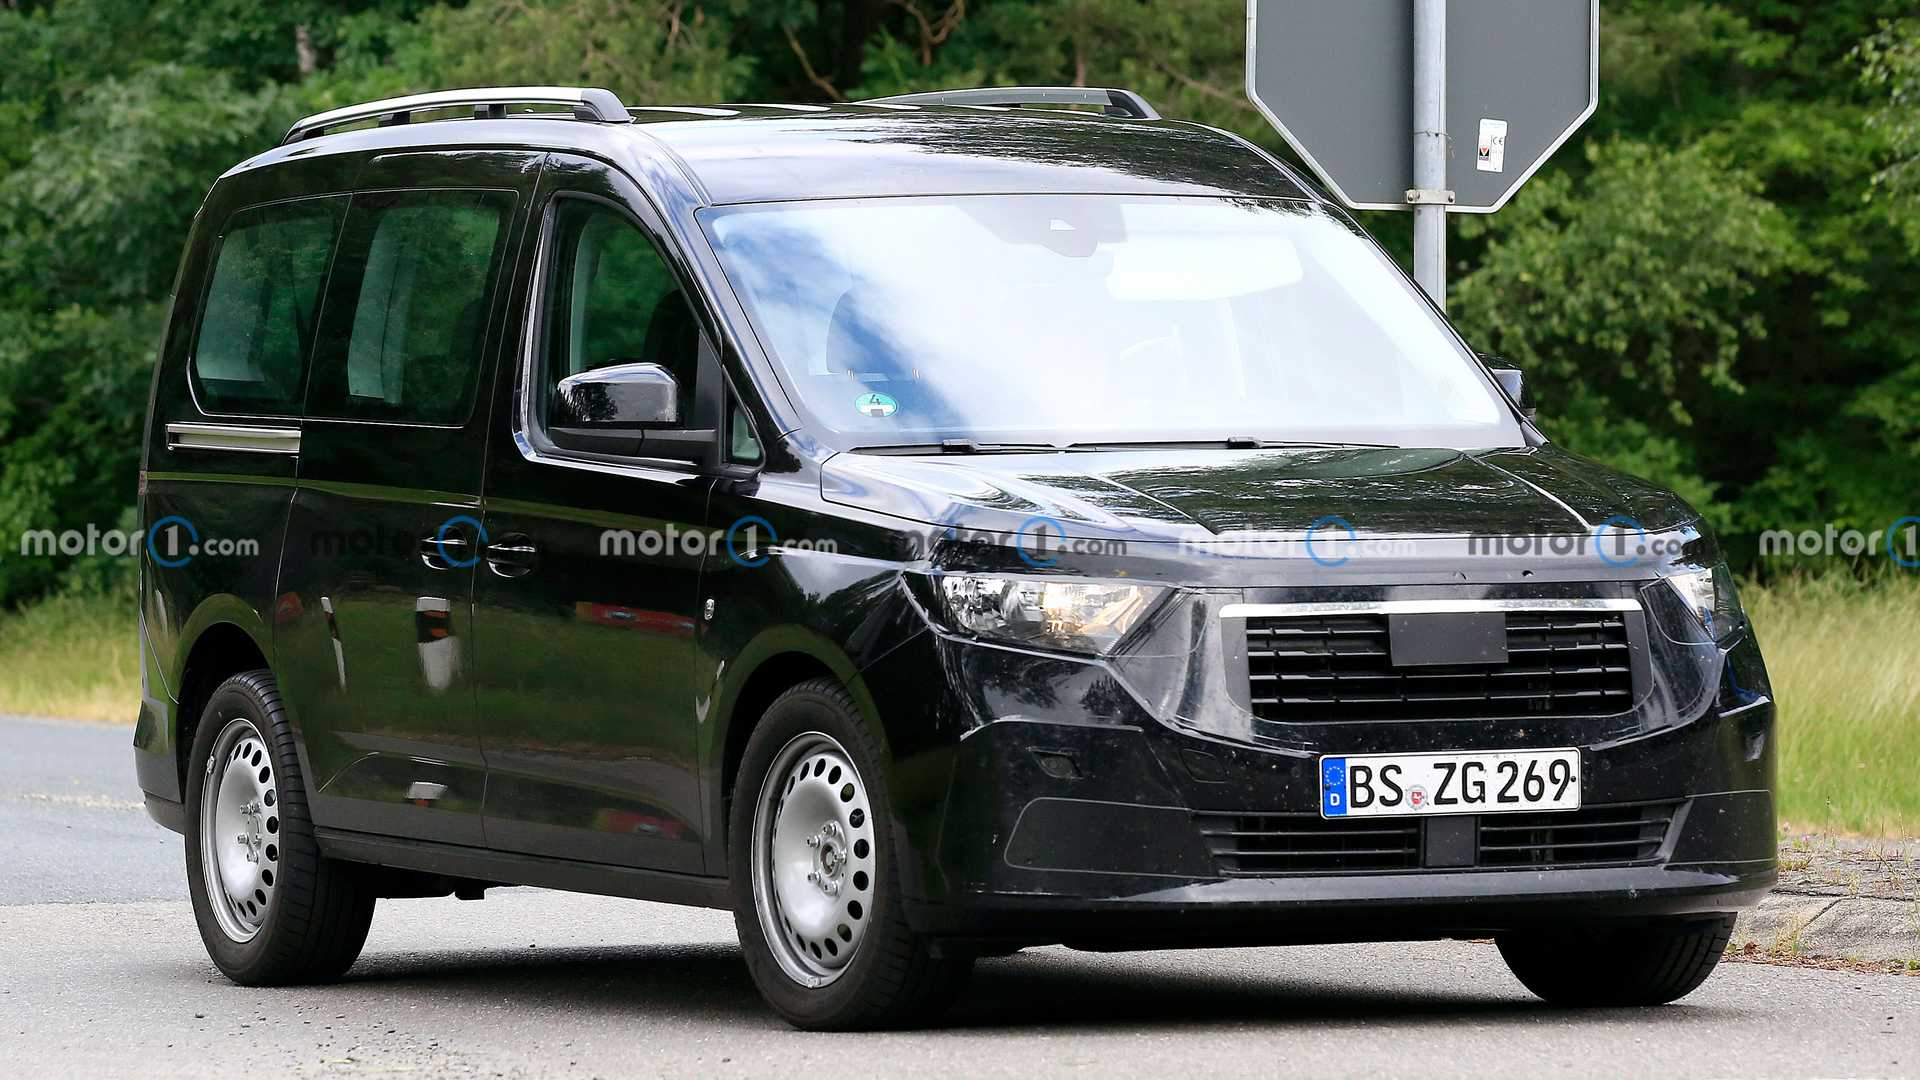 https://cdn.motor1.com/images/mgl/gYZbE/s6/new-ford-tourneo-connect-first-spy-photo-front-three-quarters.jpg